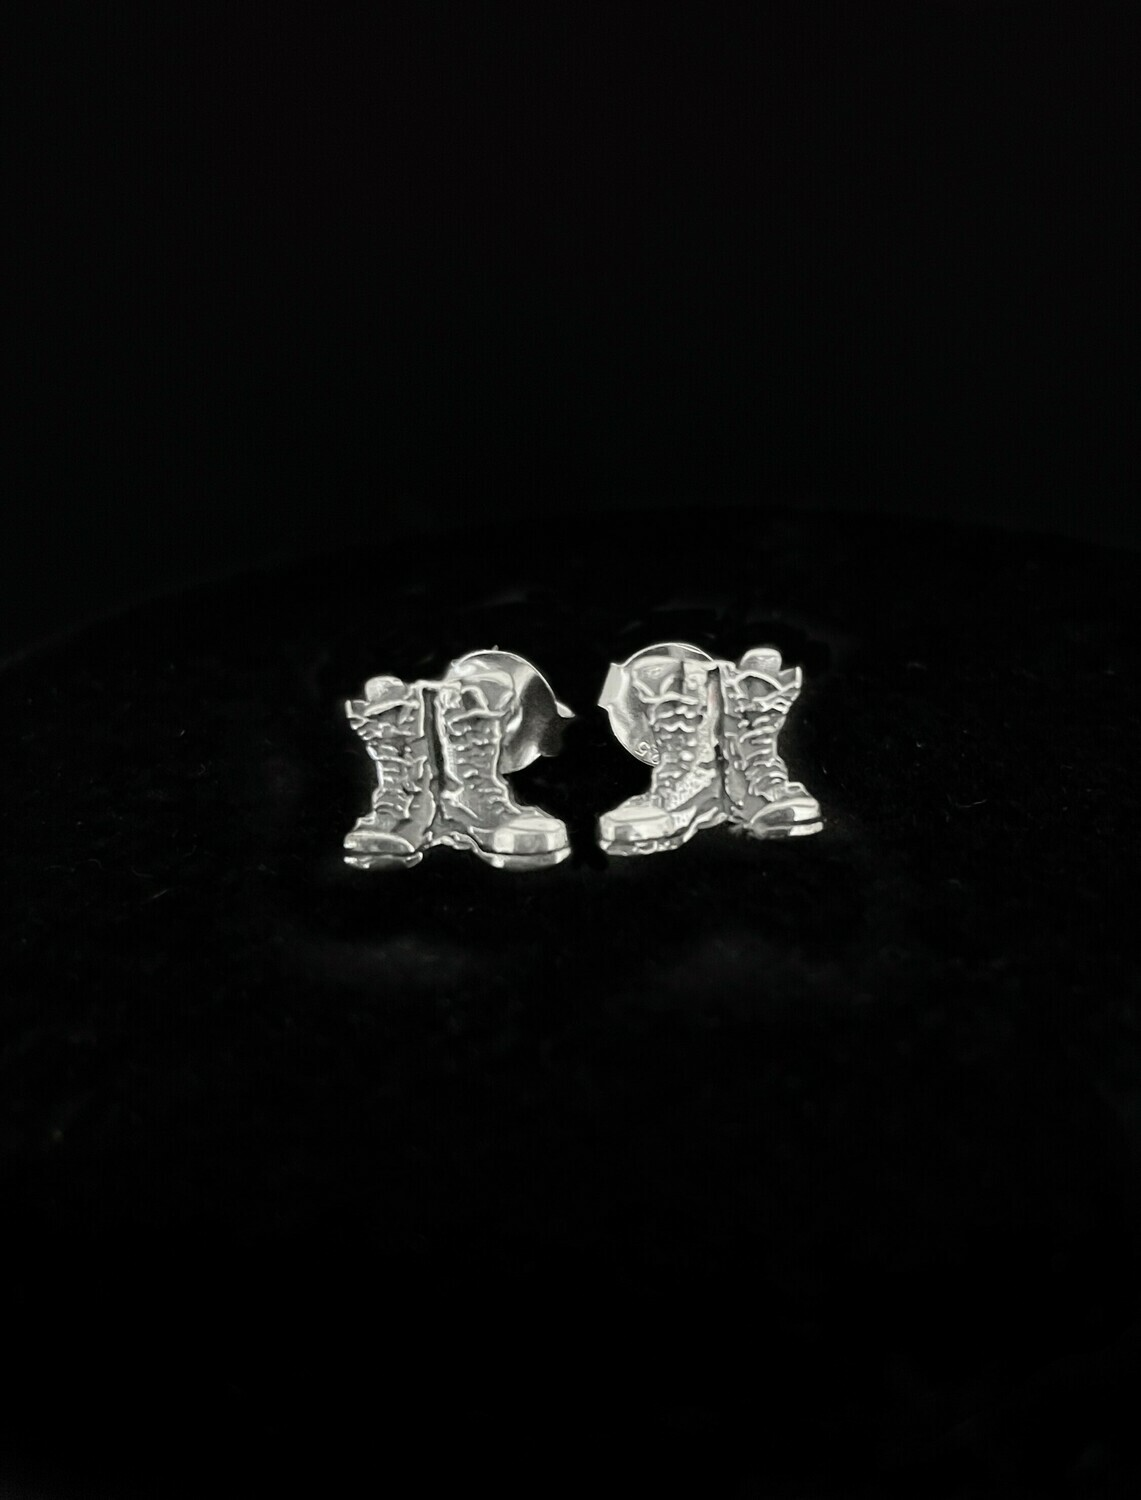 Z Discontinued Antique Stud Boots Earrings Sterling Silver